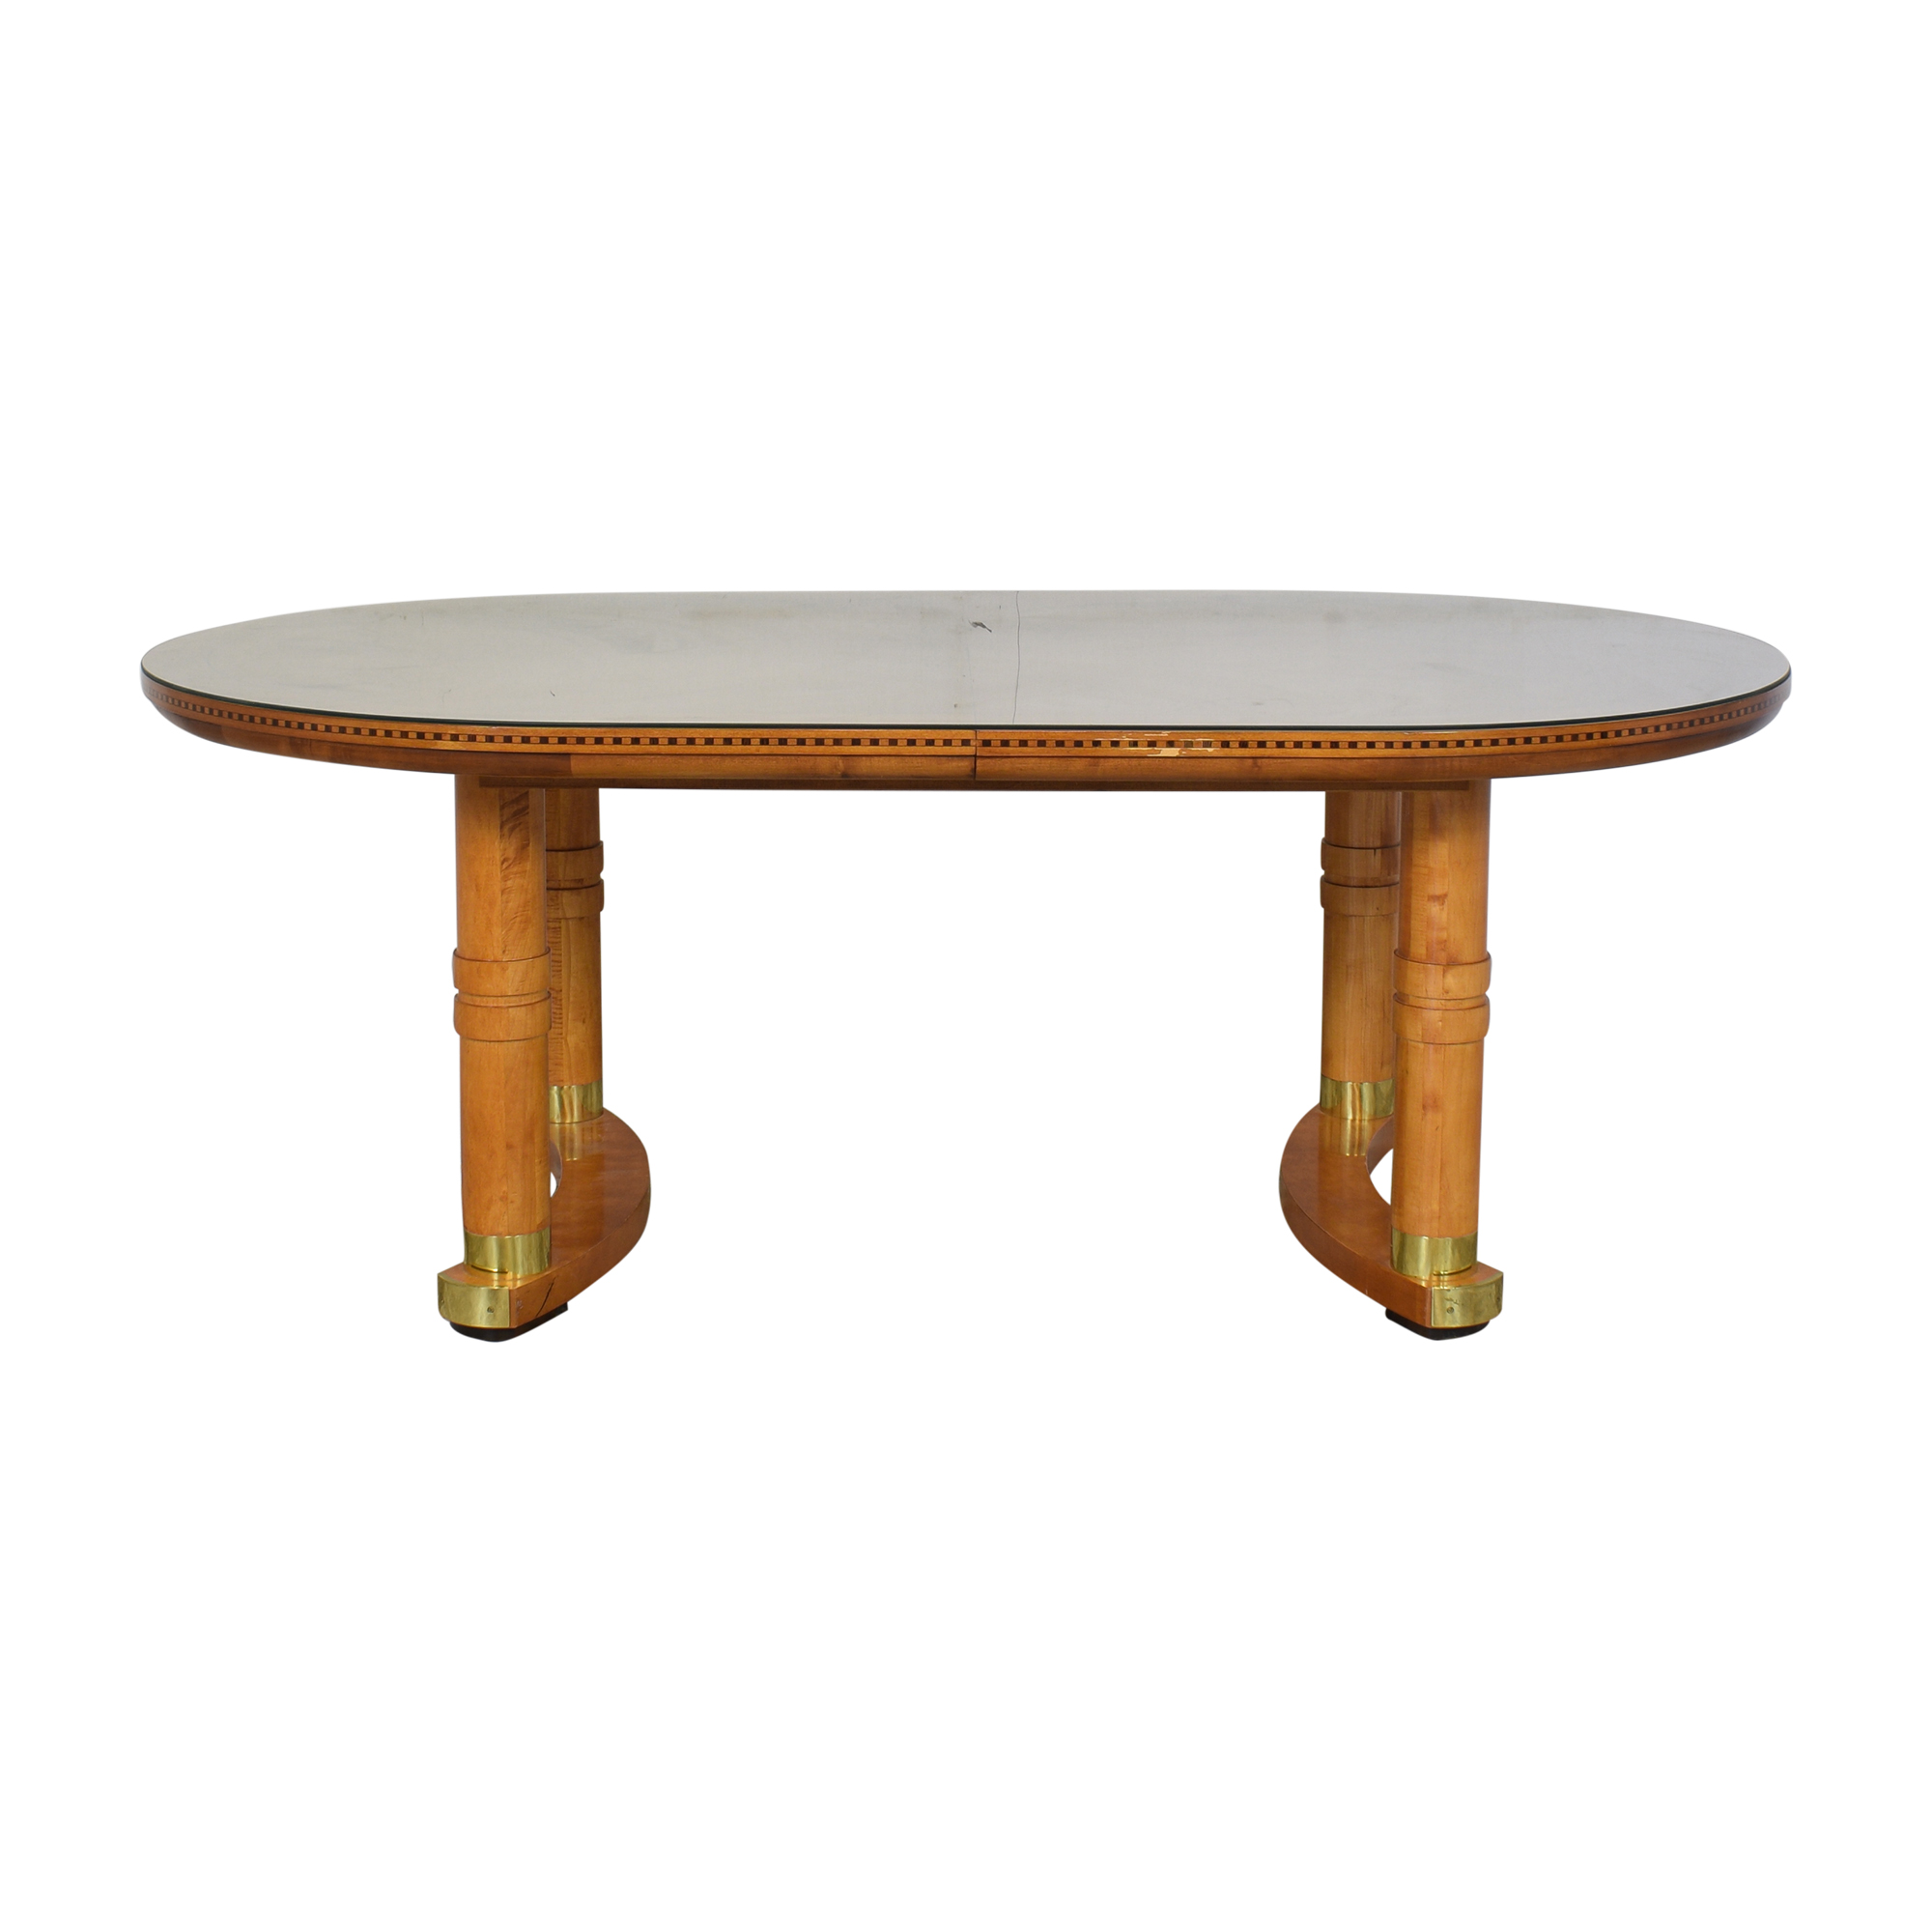 Huffman Koos Huffman Koos Extendable Dining Table discount